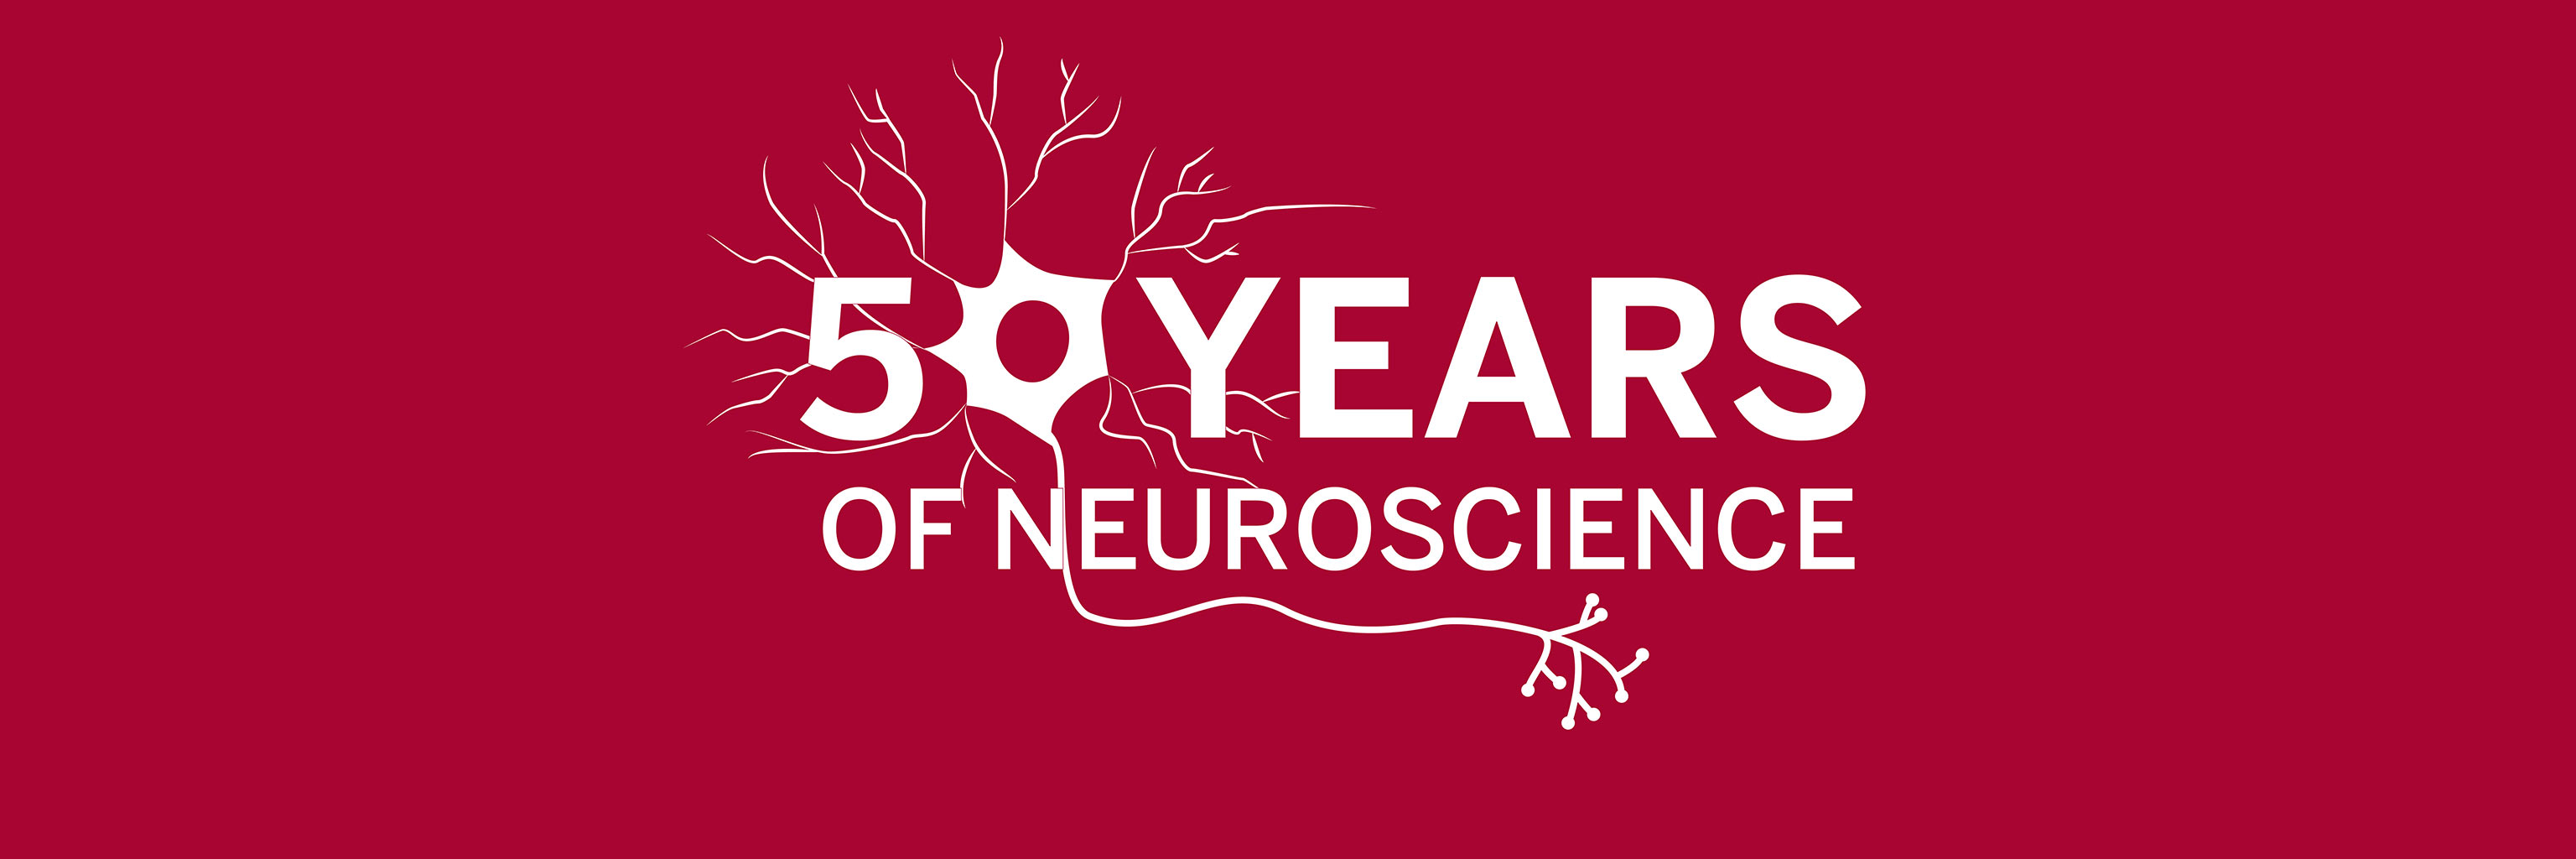 Over 50 Years of Neuroscience at IU: News & Events: Program